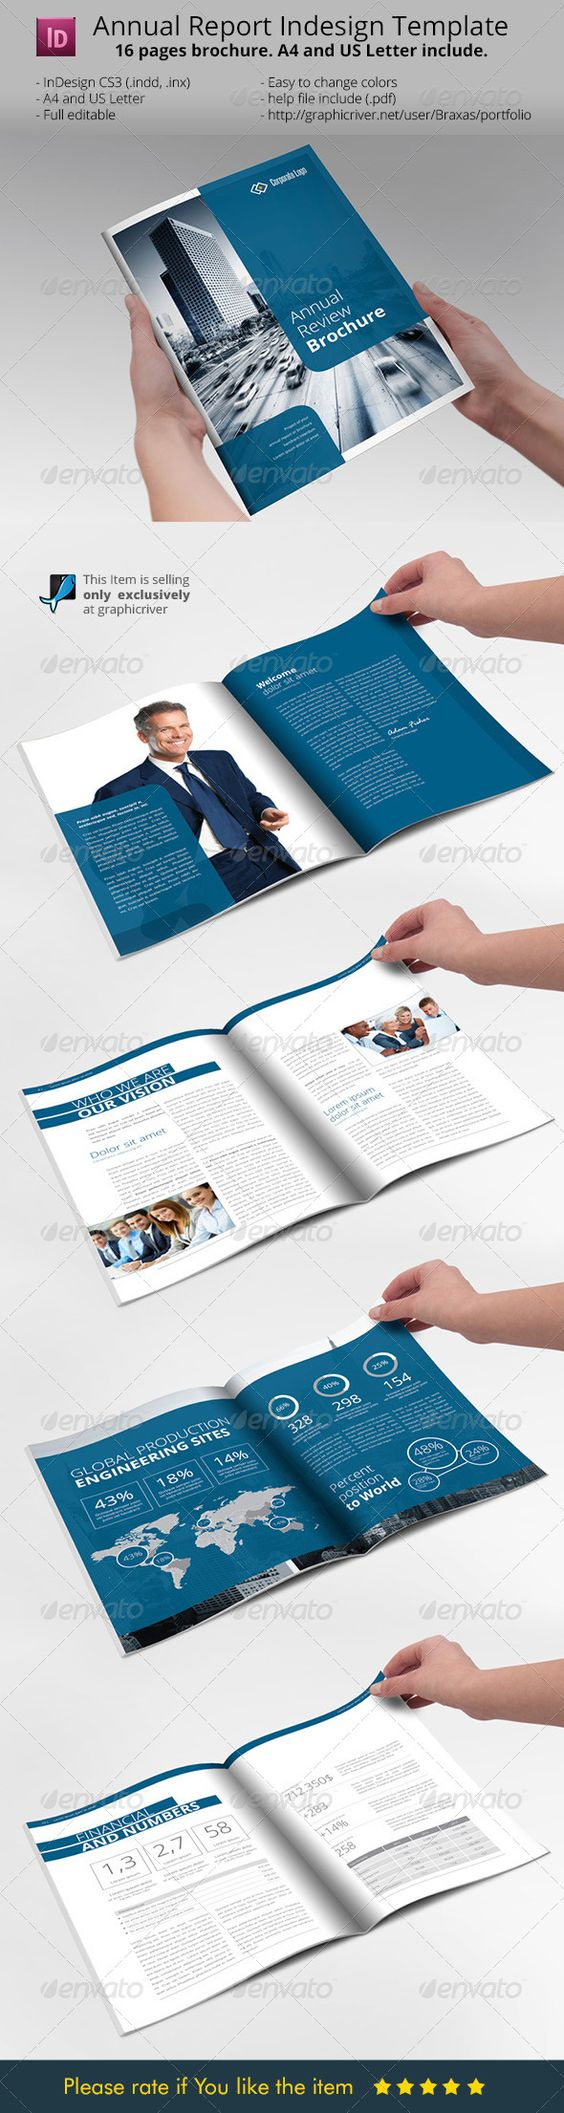 Annual report brochure indesign template design for Informational brochure templates